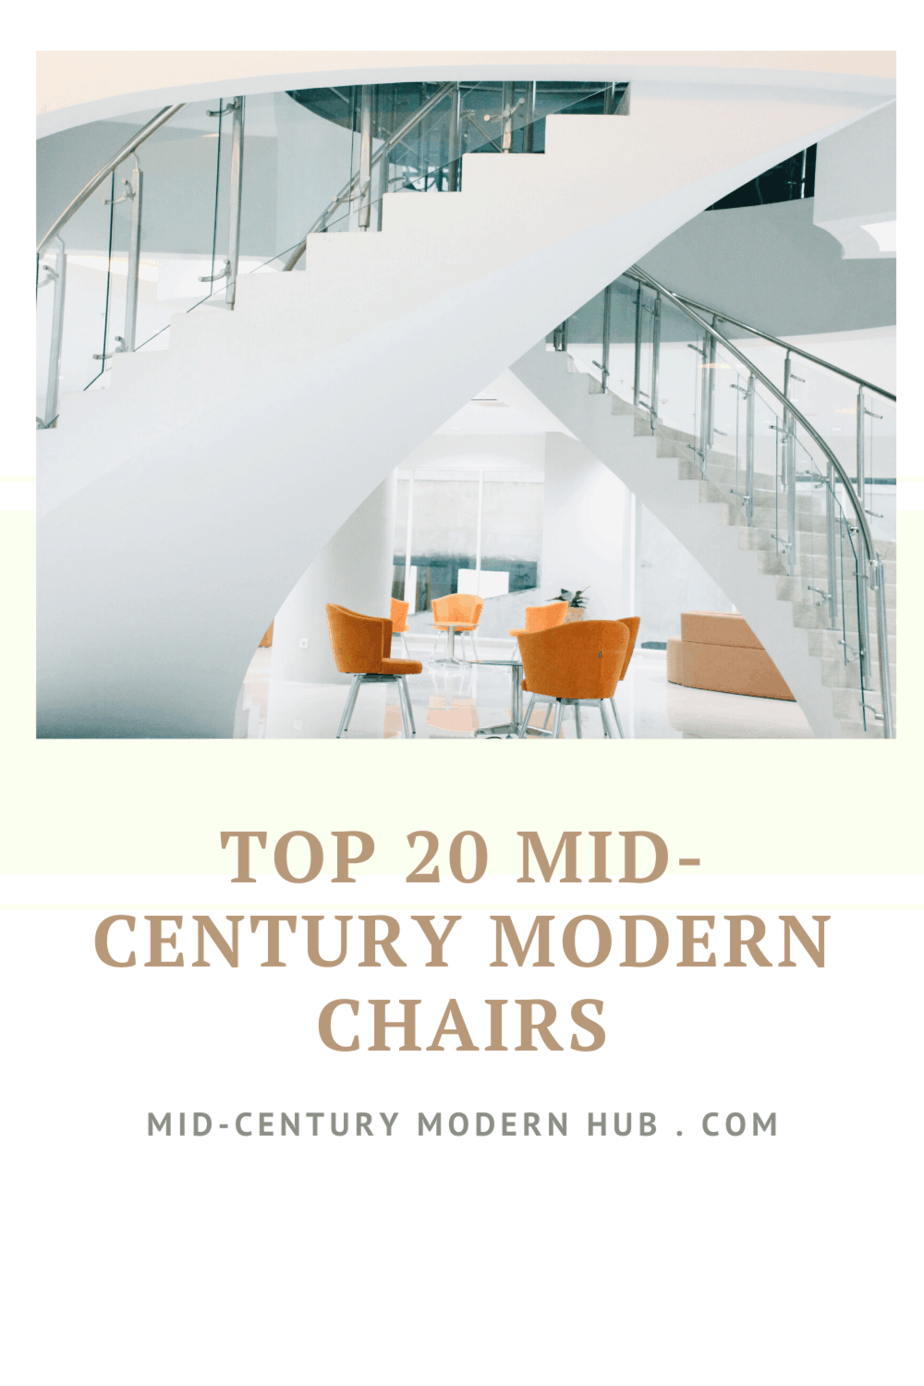 The 20 most famous Mid-Century Modern chairs